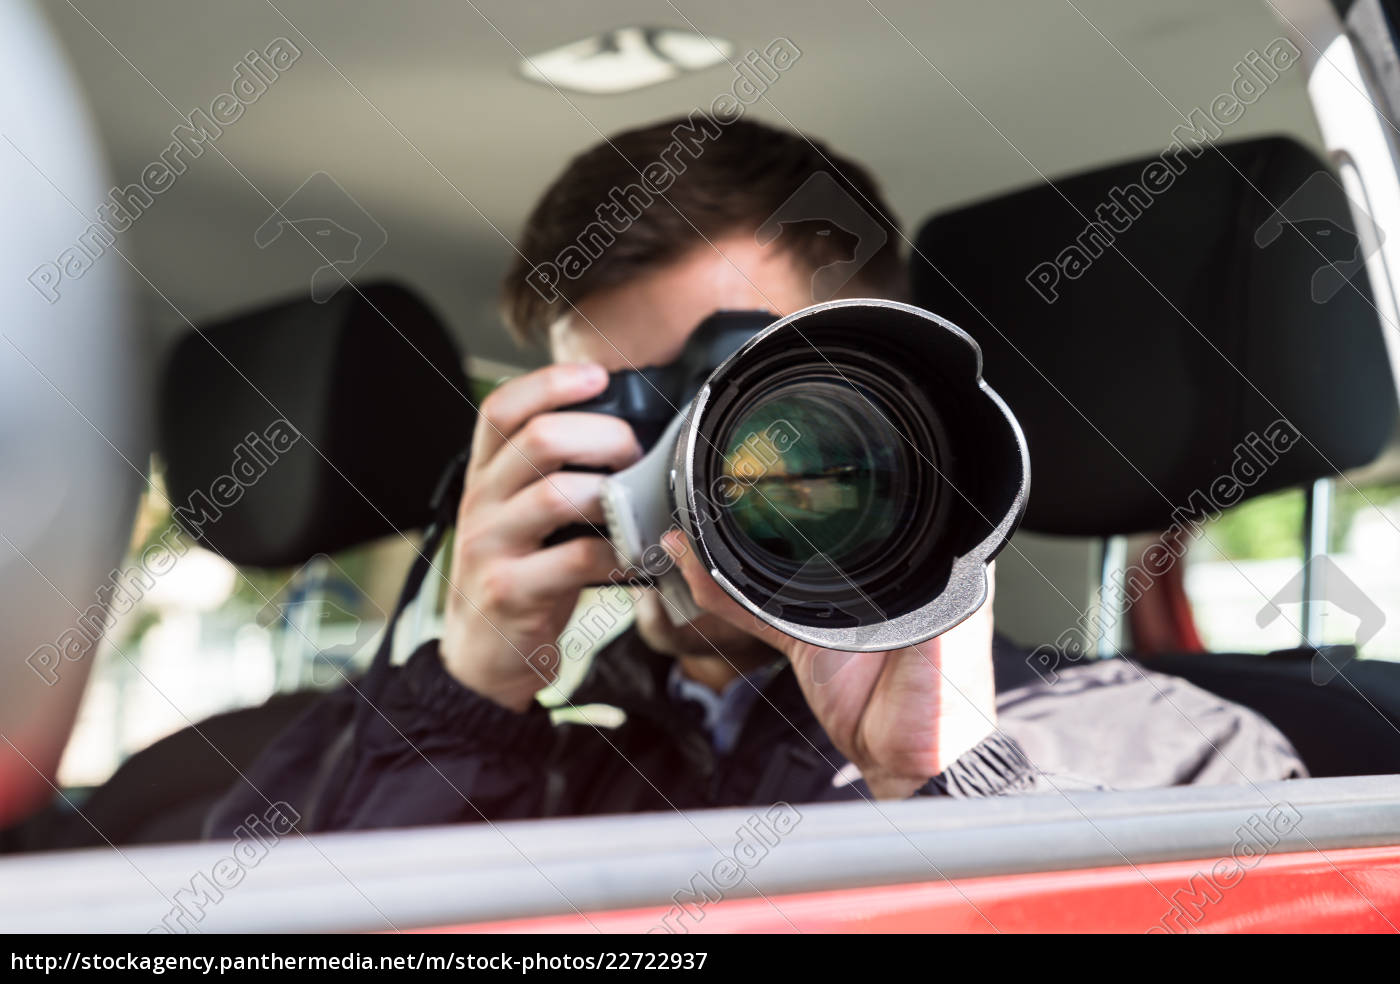 private, detective, photographing, with, slr, camera - 22722937